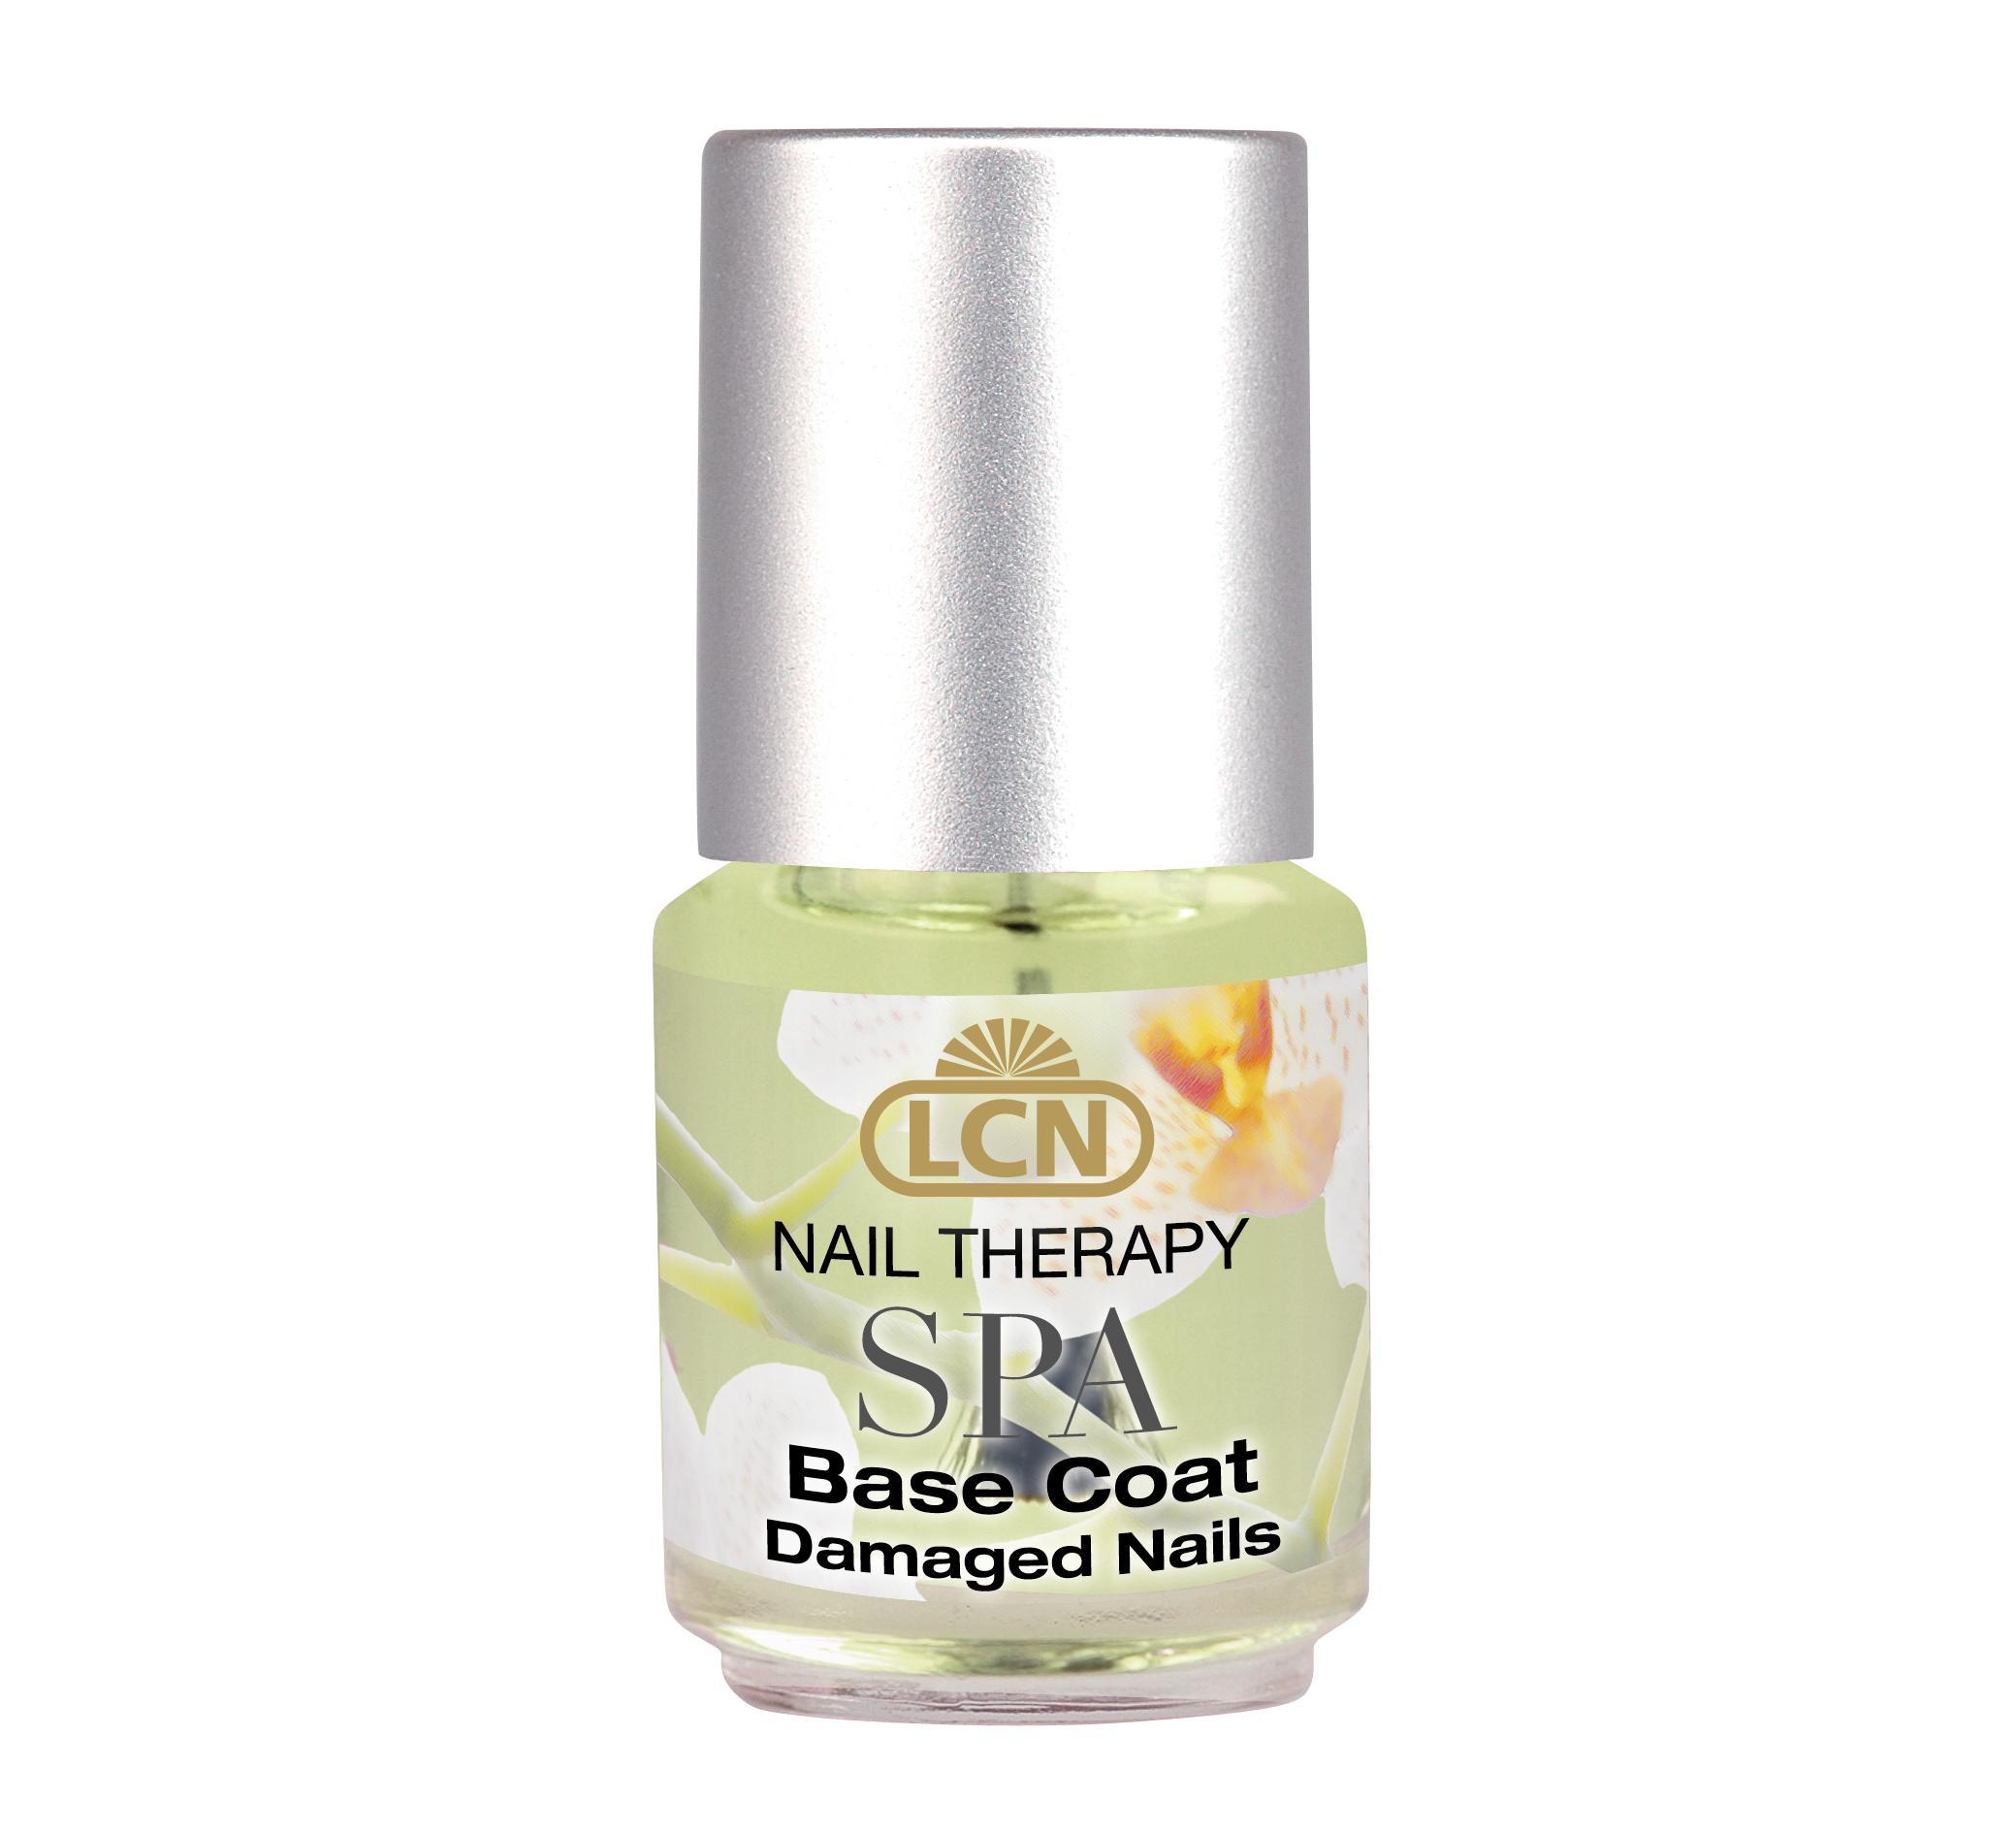 SPA Nail Therapy Base Coat, damaged nails